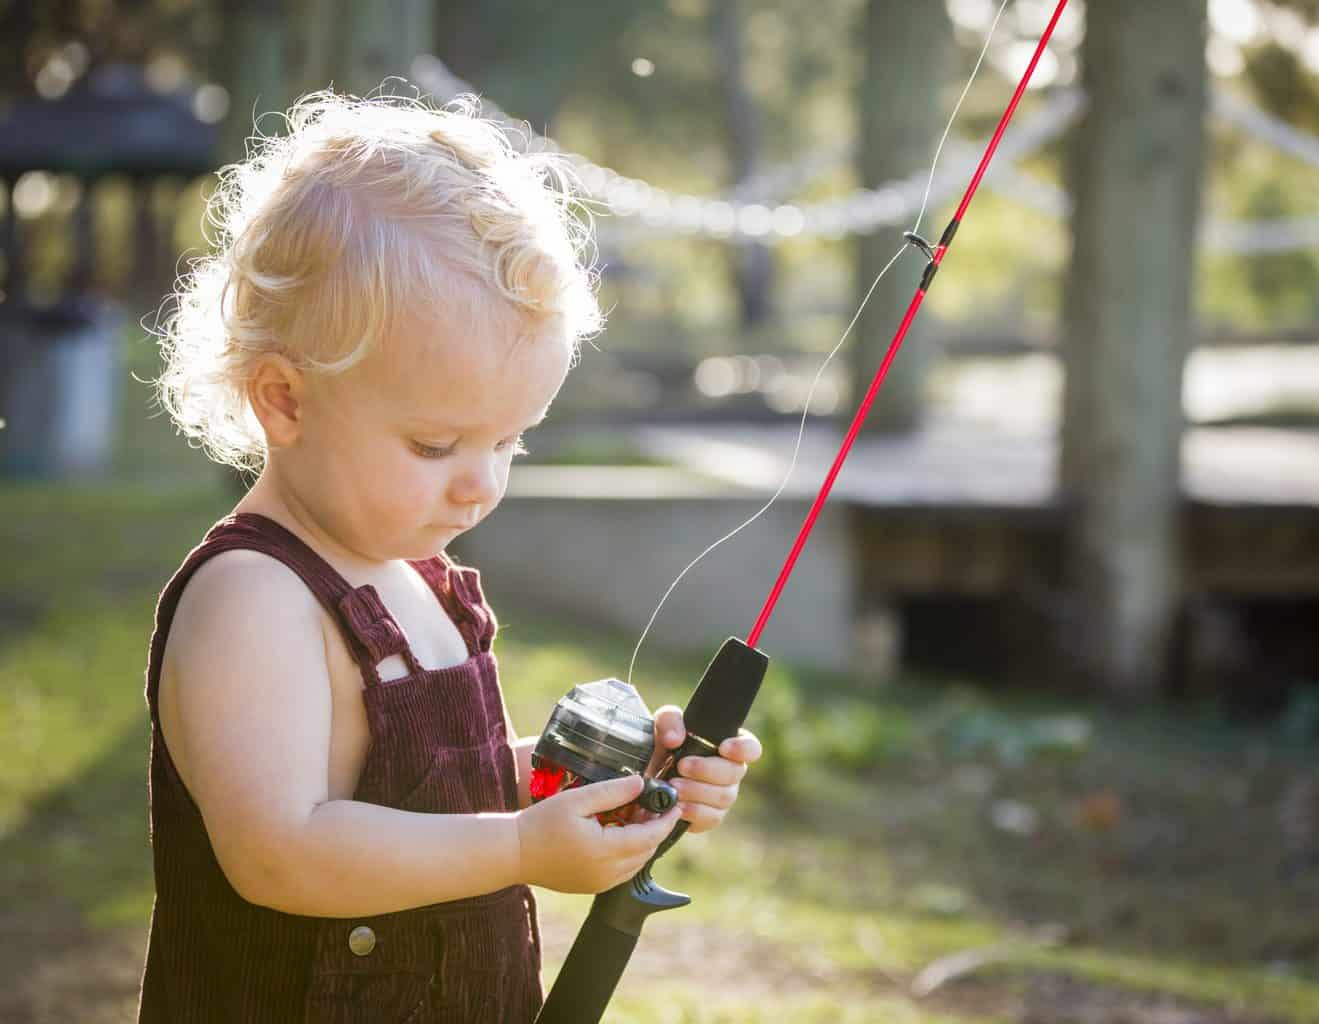 Cute Young Boy With Fishing Pole Outside at The Lake. Fishing with toddlers is fun!